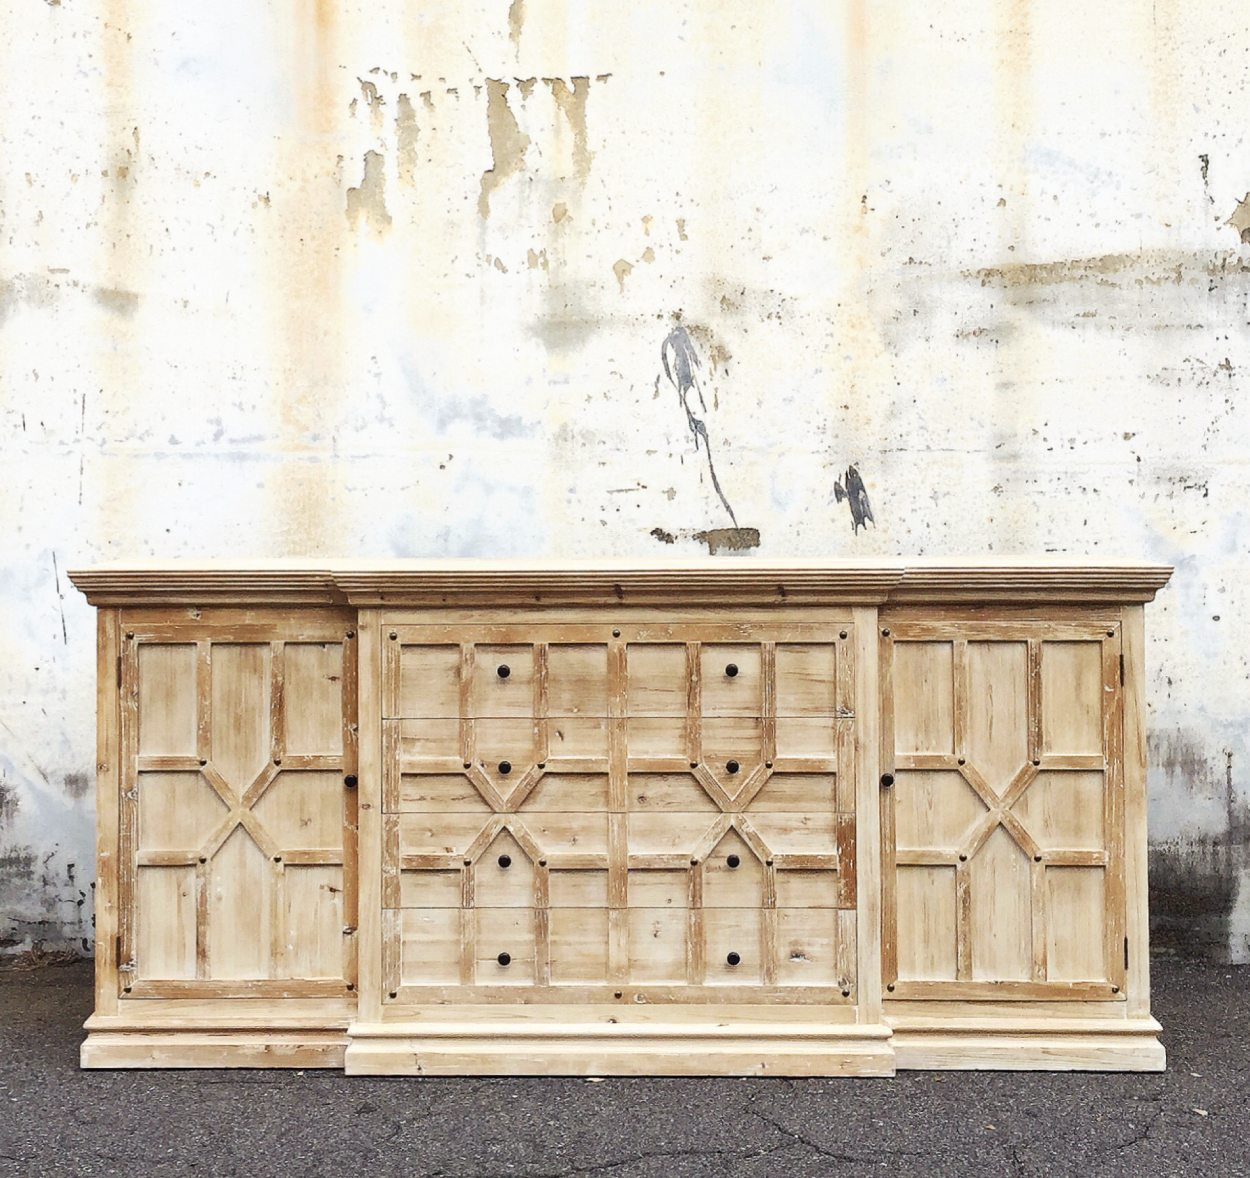 Solid Wood. Reclaimed. Sustainable.